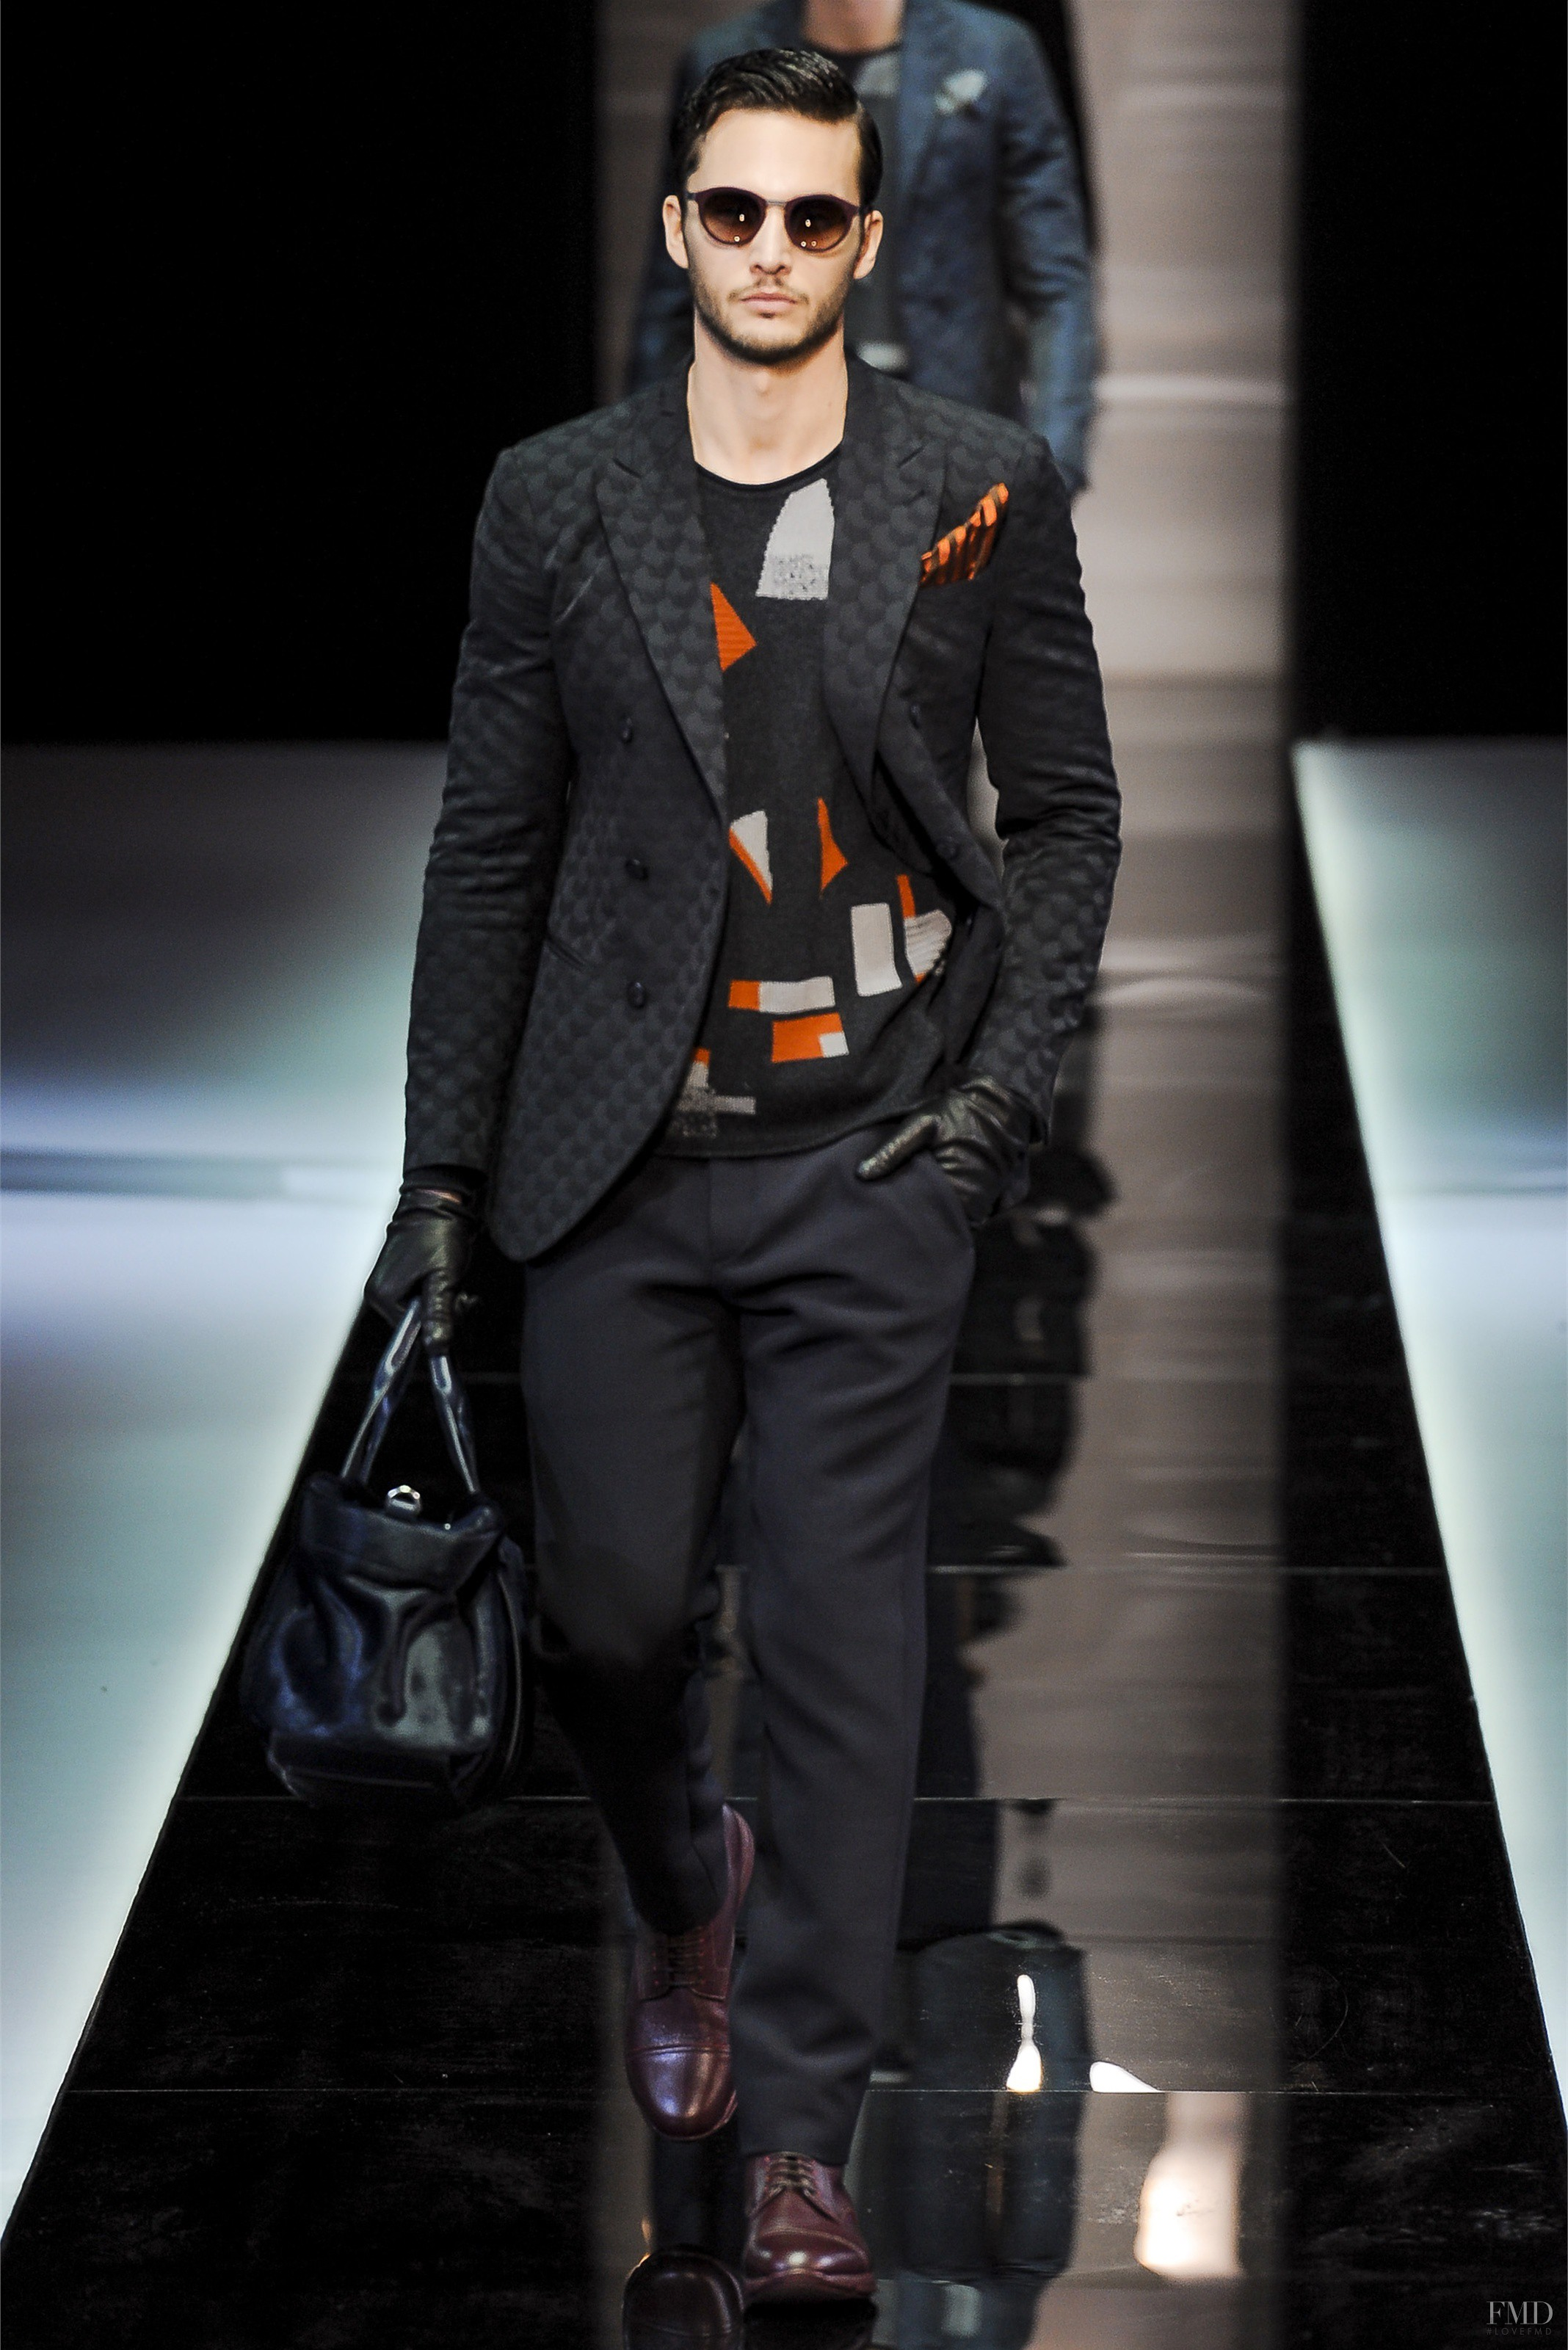 Armani fashion for men 37